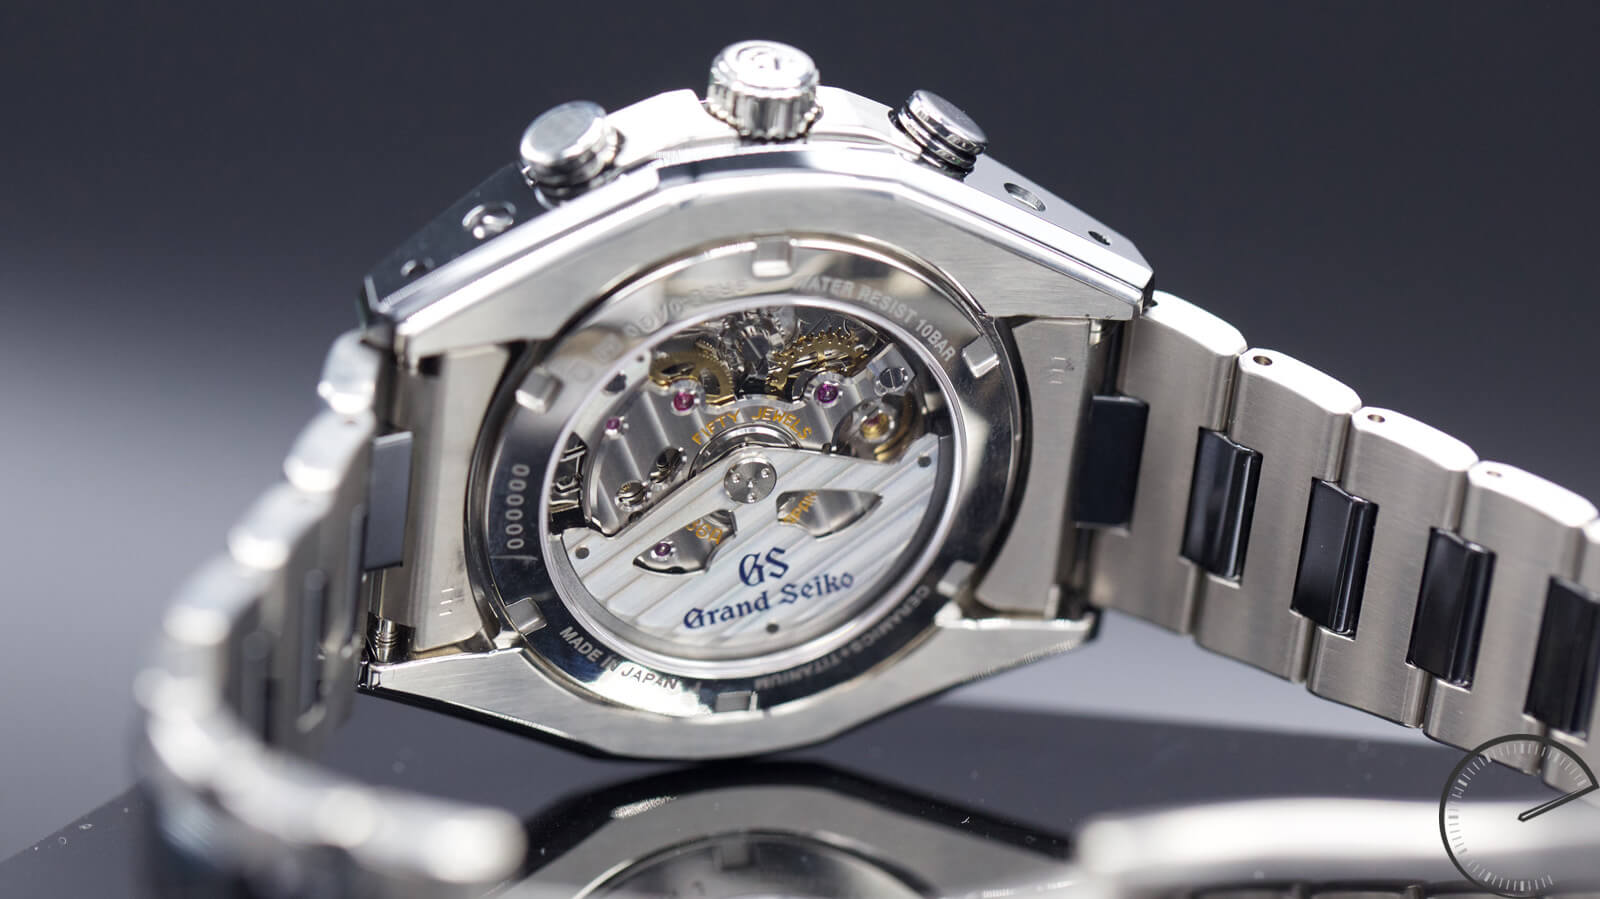 low priced da3d3 536a0 Grand Seiko Spring Drive Chronograph GMT SBGC221 | ESCAPEMENT